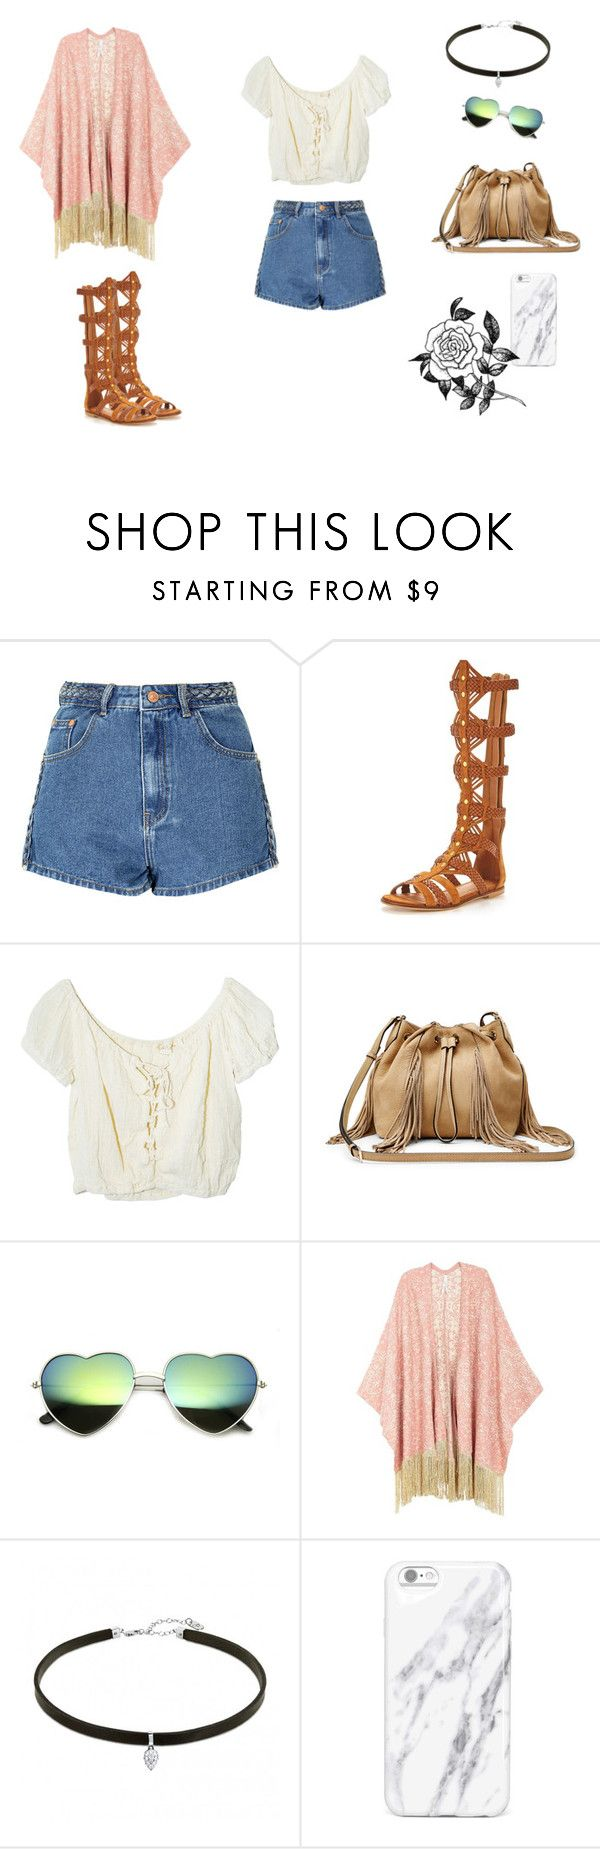 """""""Hippie Chic"""" by mmonstter ❤ liked on Polyvore featuring Glamorous, KG Kurt Geiger, Jens Pirate Booty, Diane Von Furstenberg, Melissa McCarthy Seven7, Forever 21 and plus size clothing"""